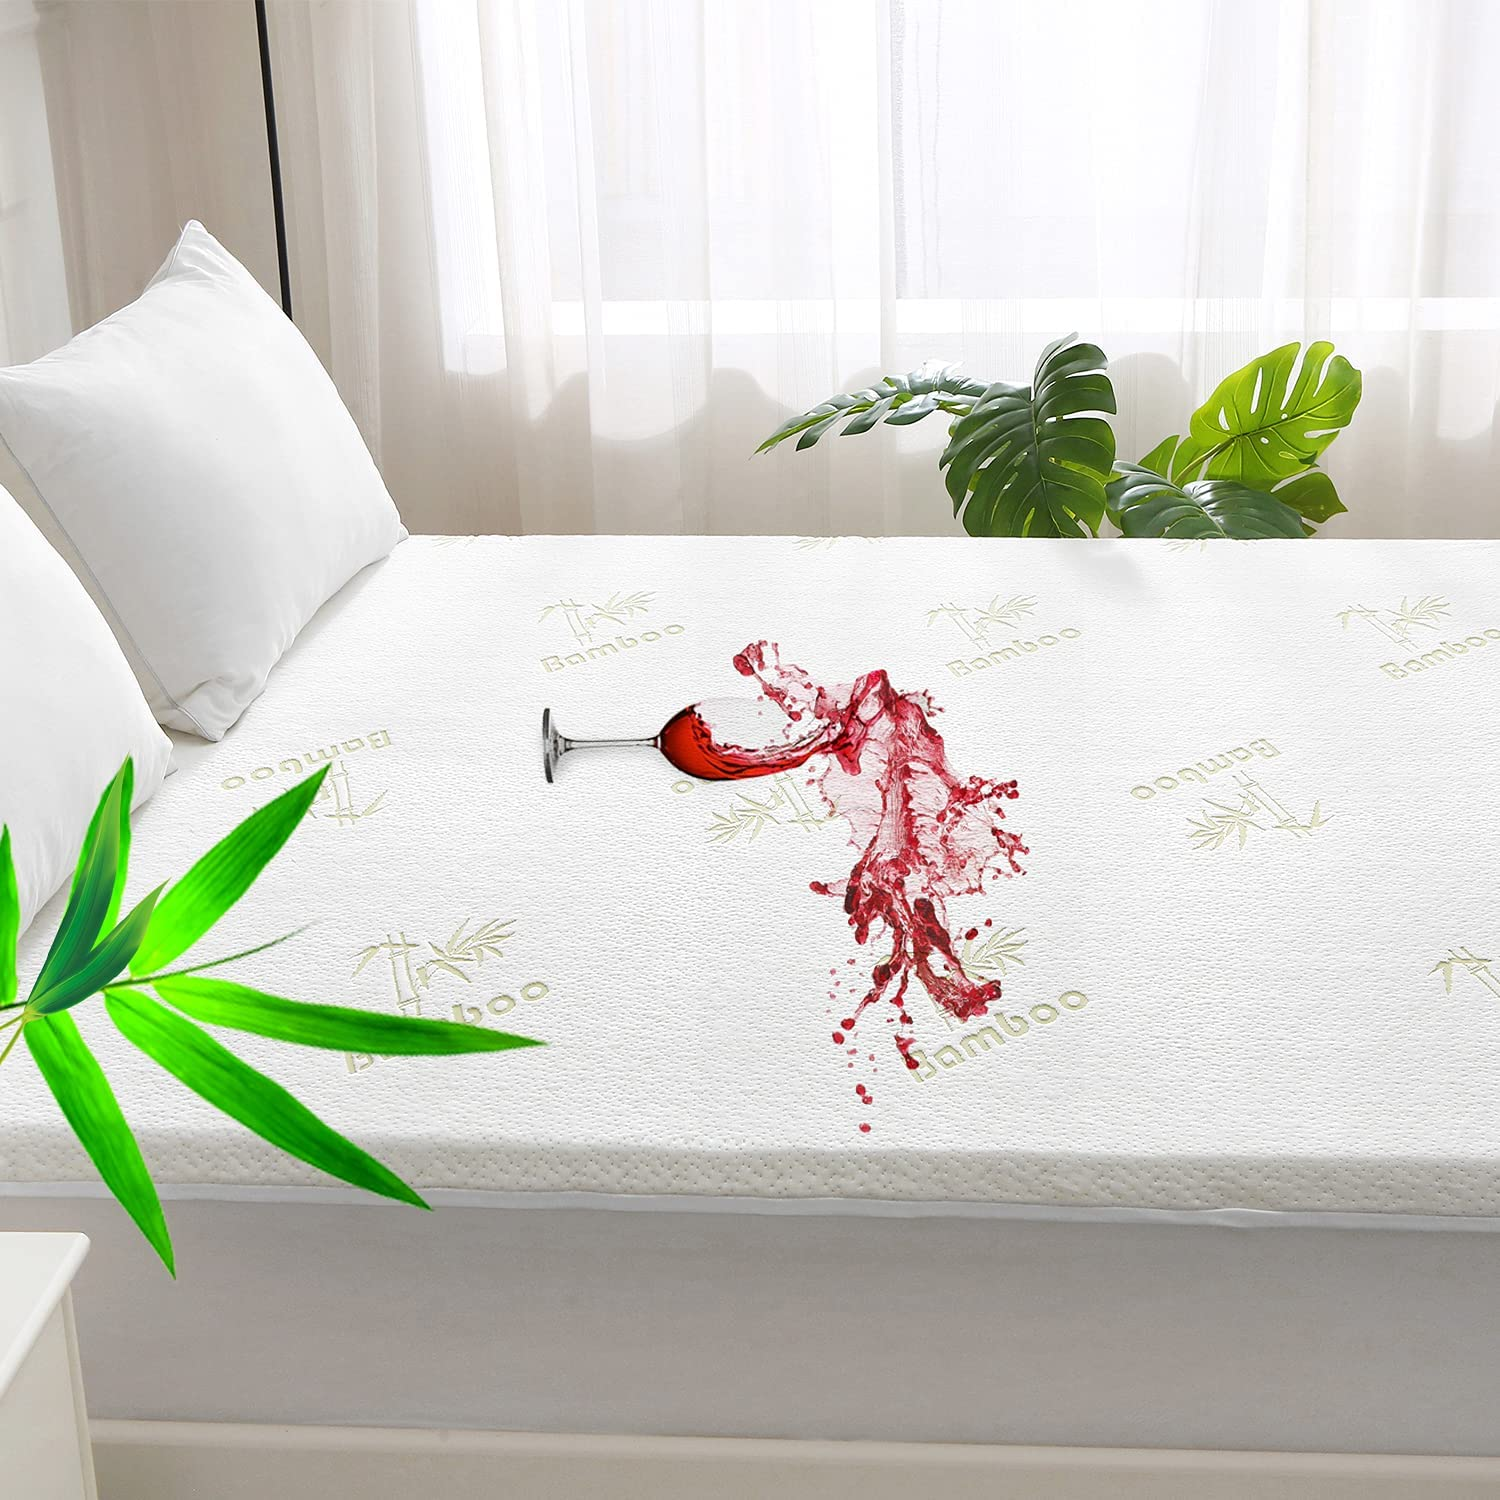 Bedecor Max 84% OFF Bamboo Mattress Protector Waterproof Soft Special sale item Top Cooling Br